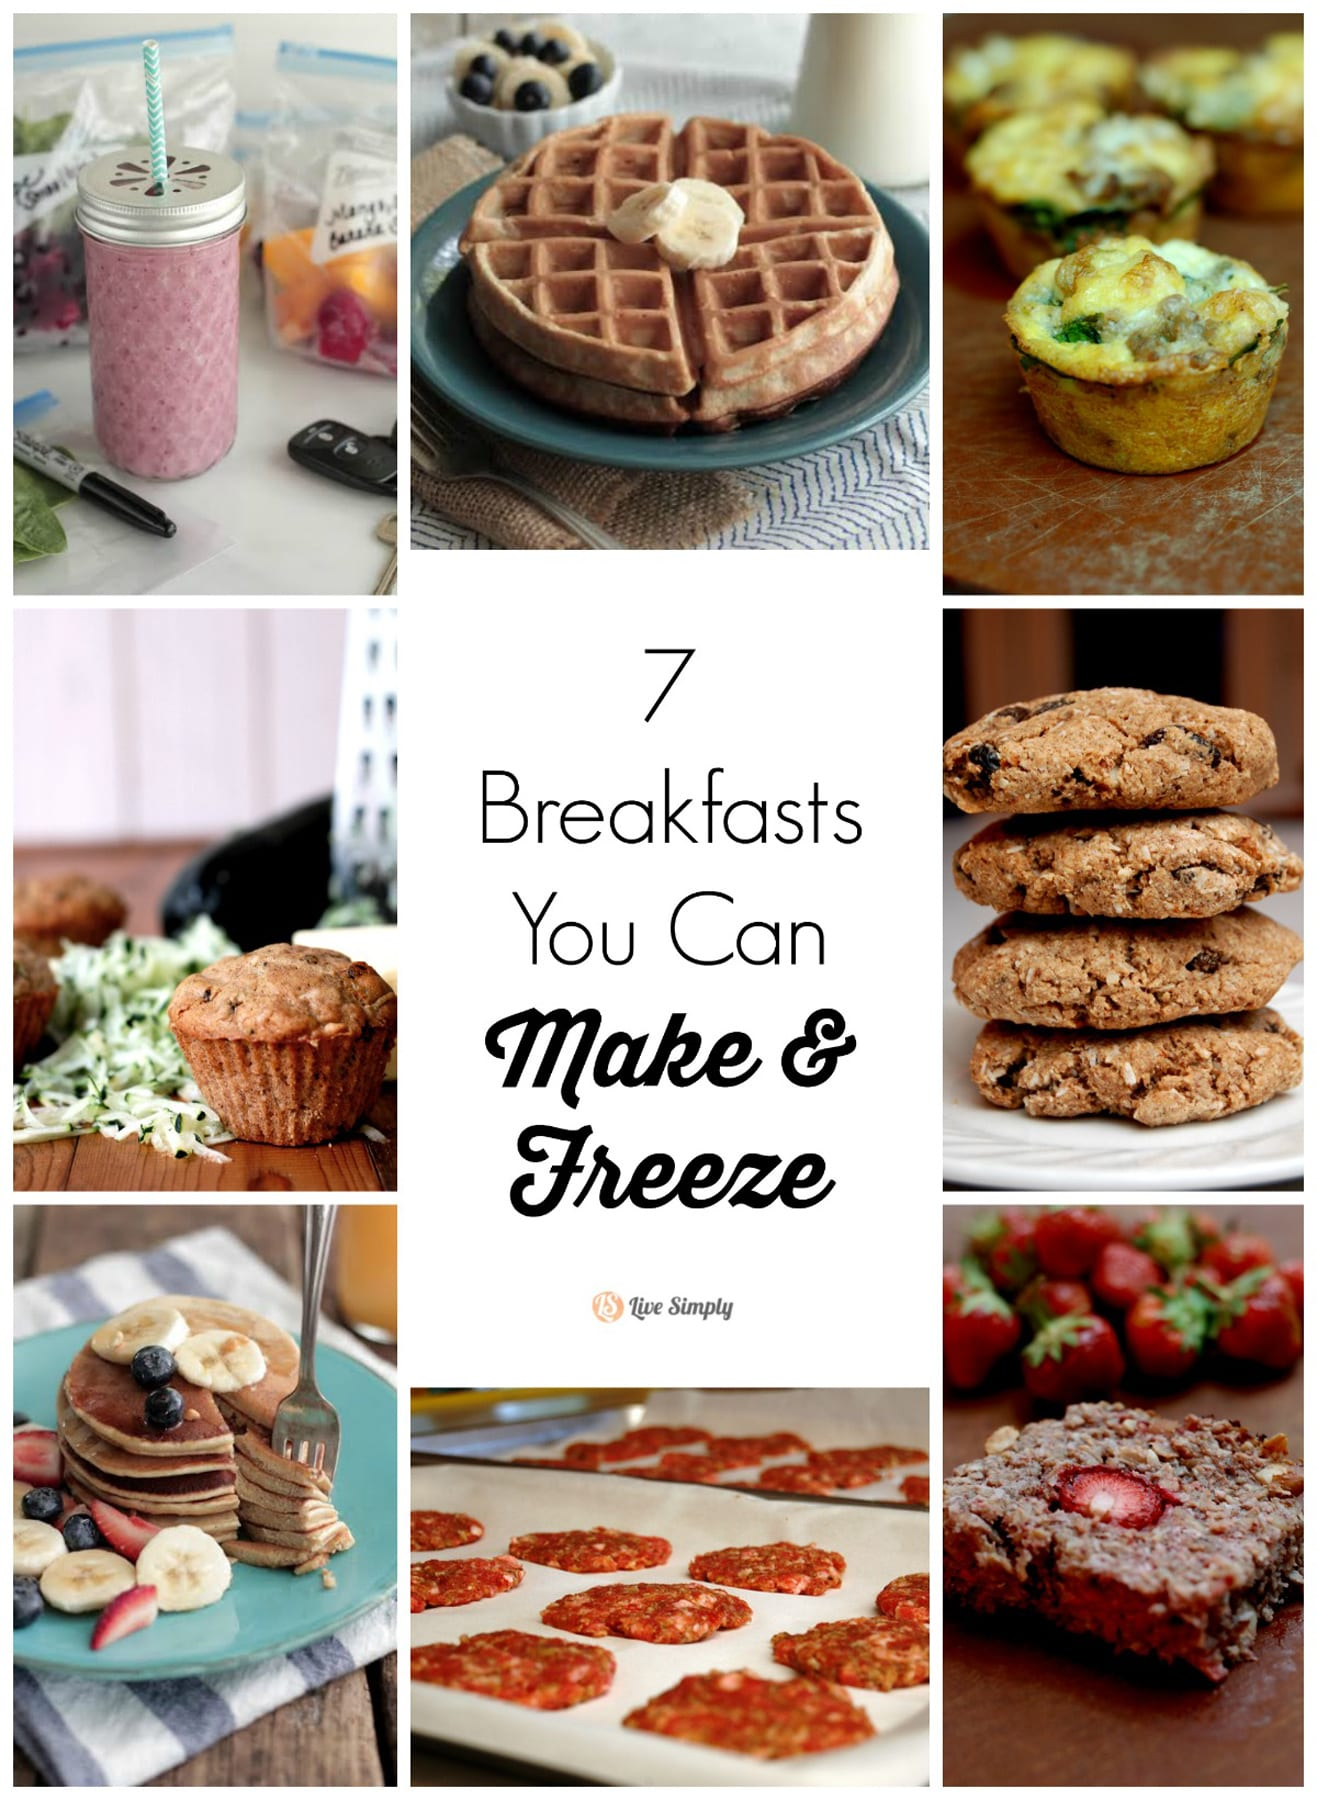 7 Breakfasts You Can Make and Freeze